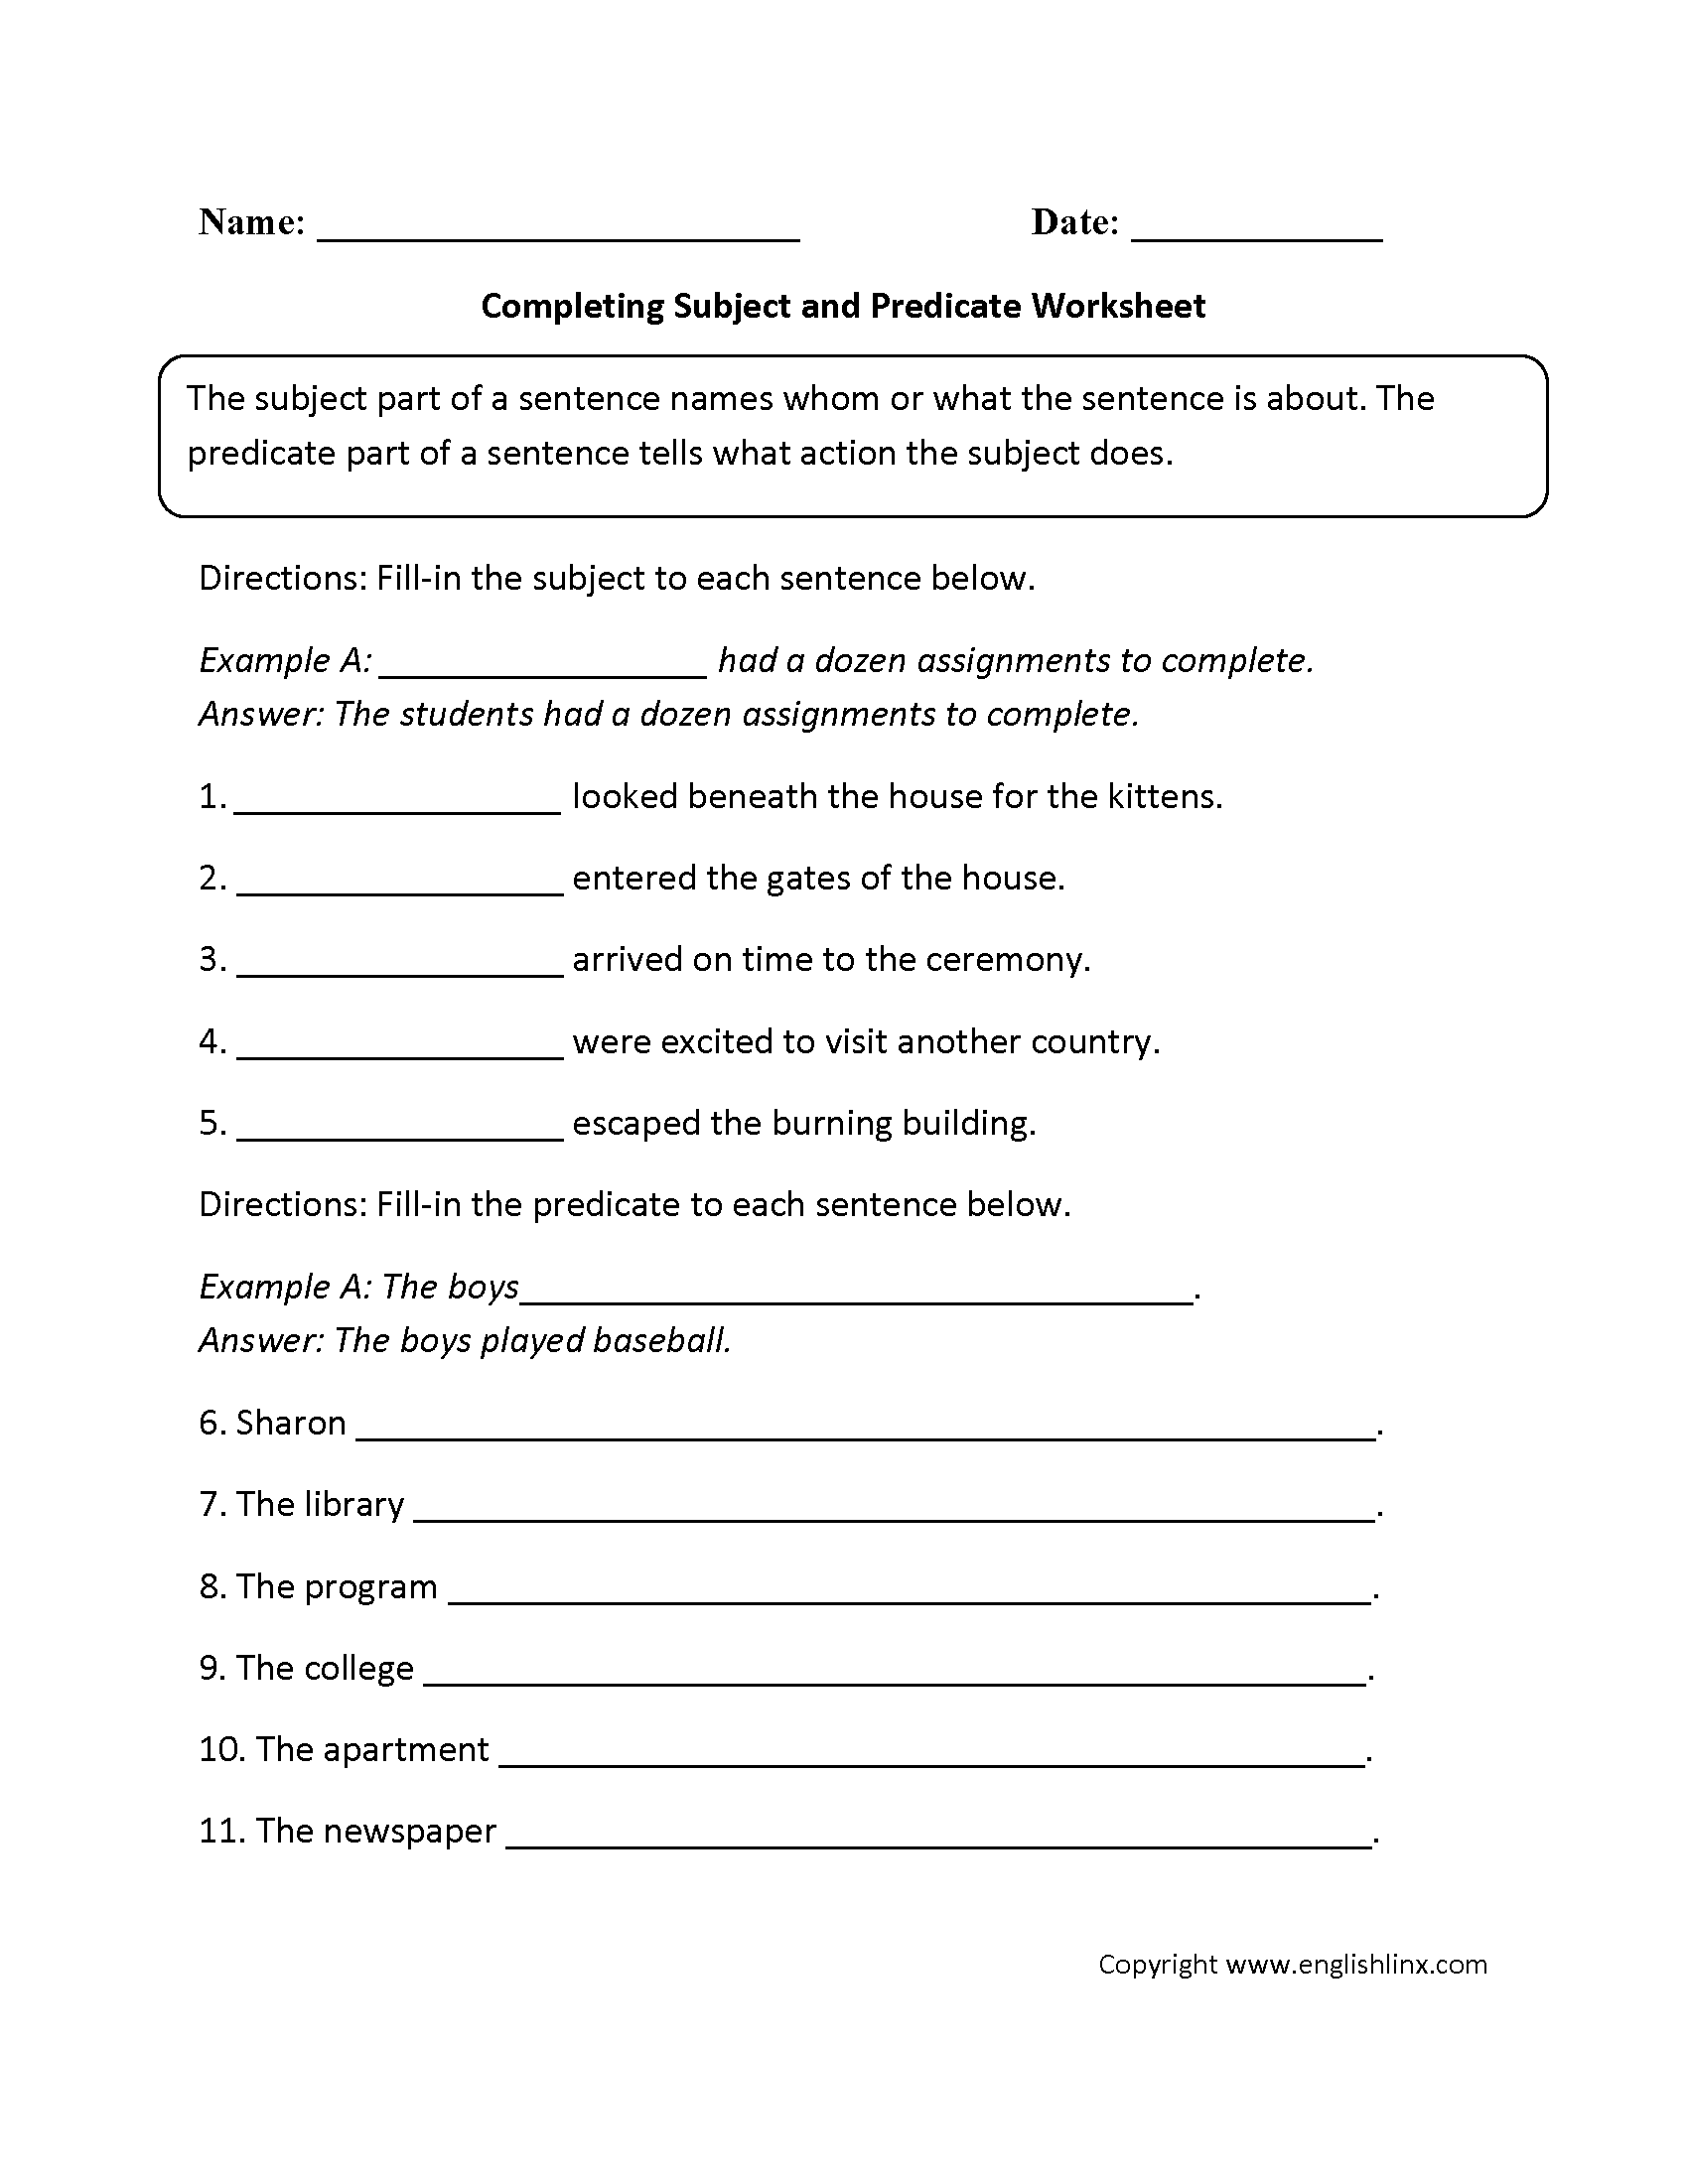 Subject Worksheets For 2nd Grade : Subject and predicate worksheets completing